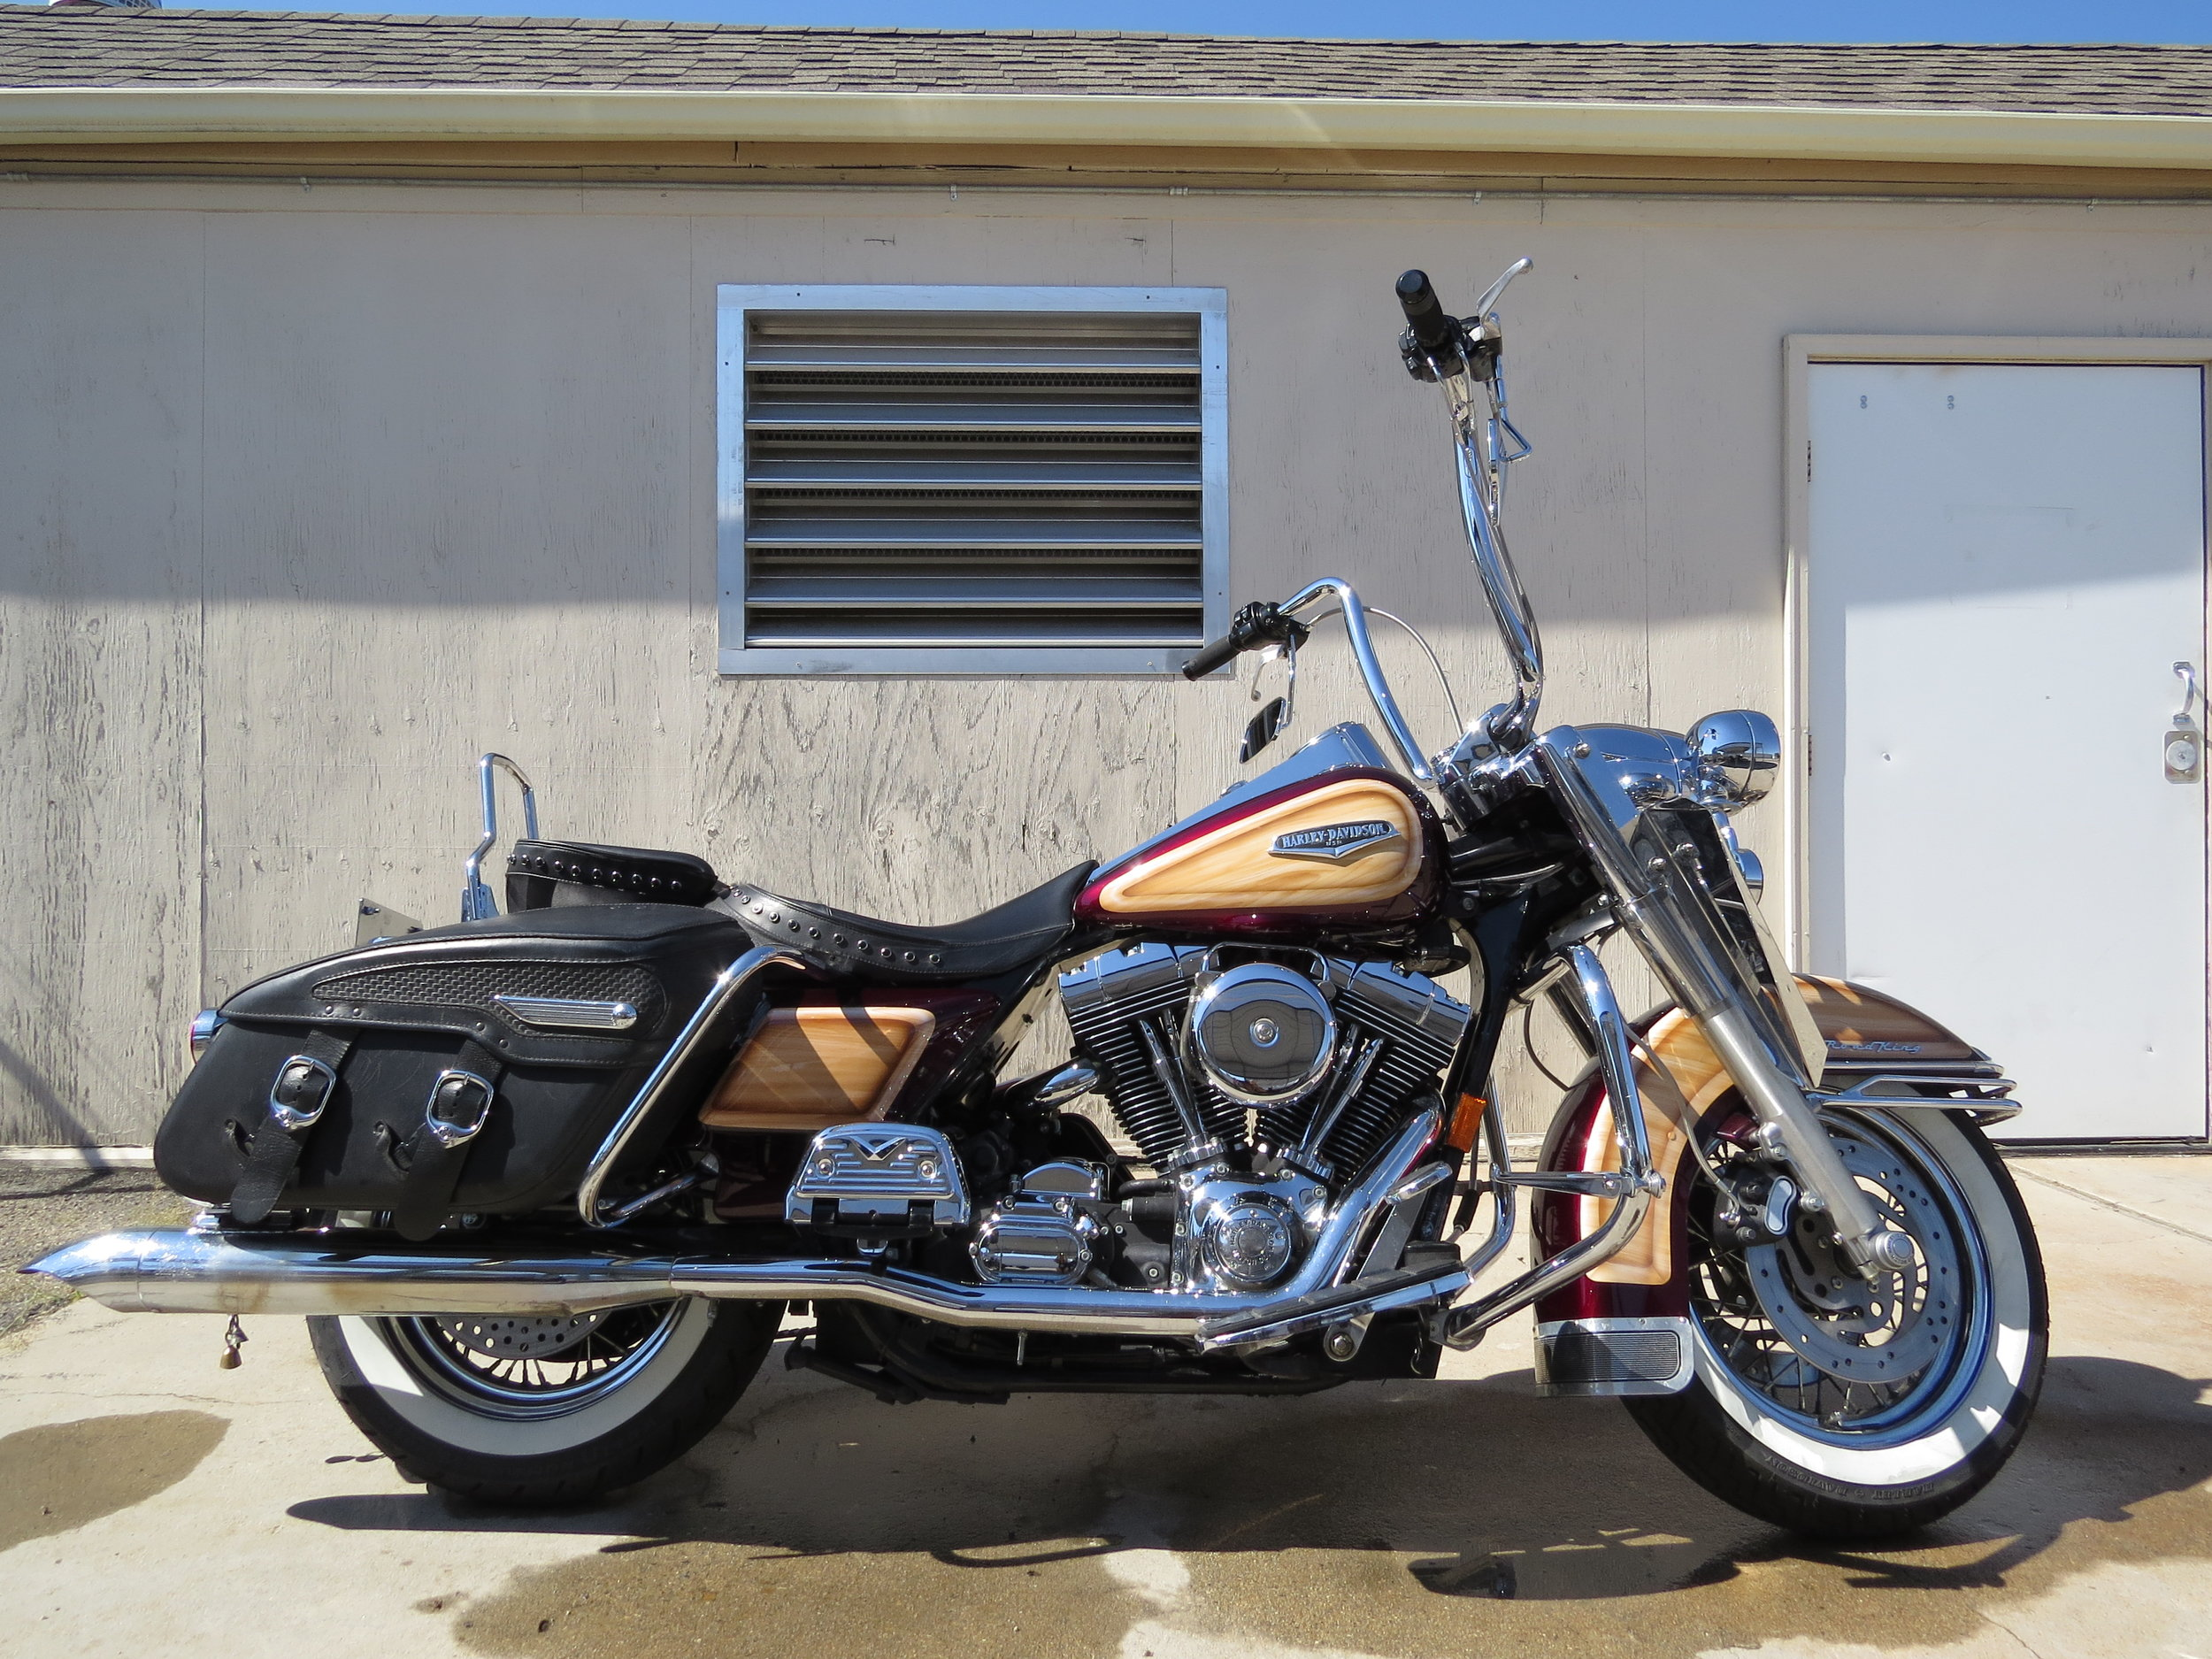 FRED'S 2000 HARLEY ROAD KING